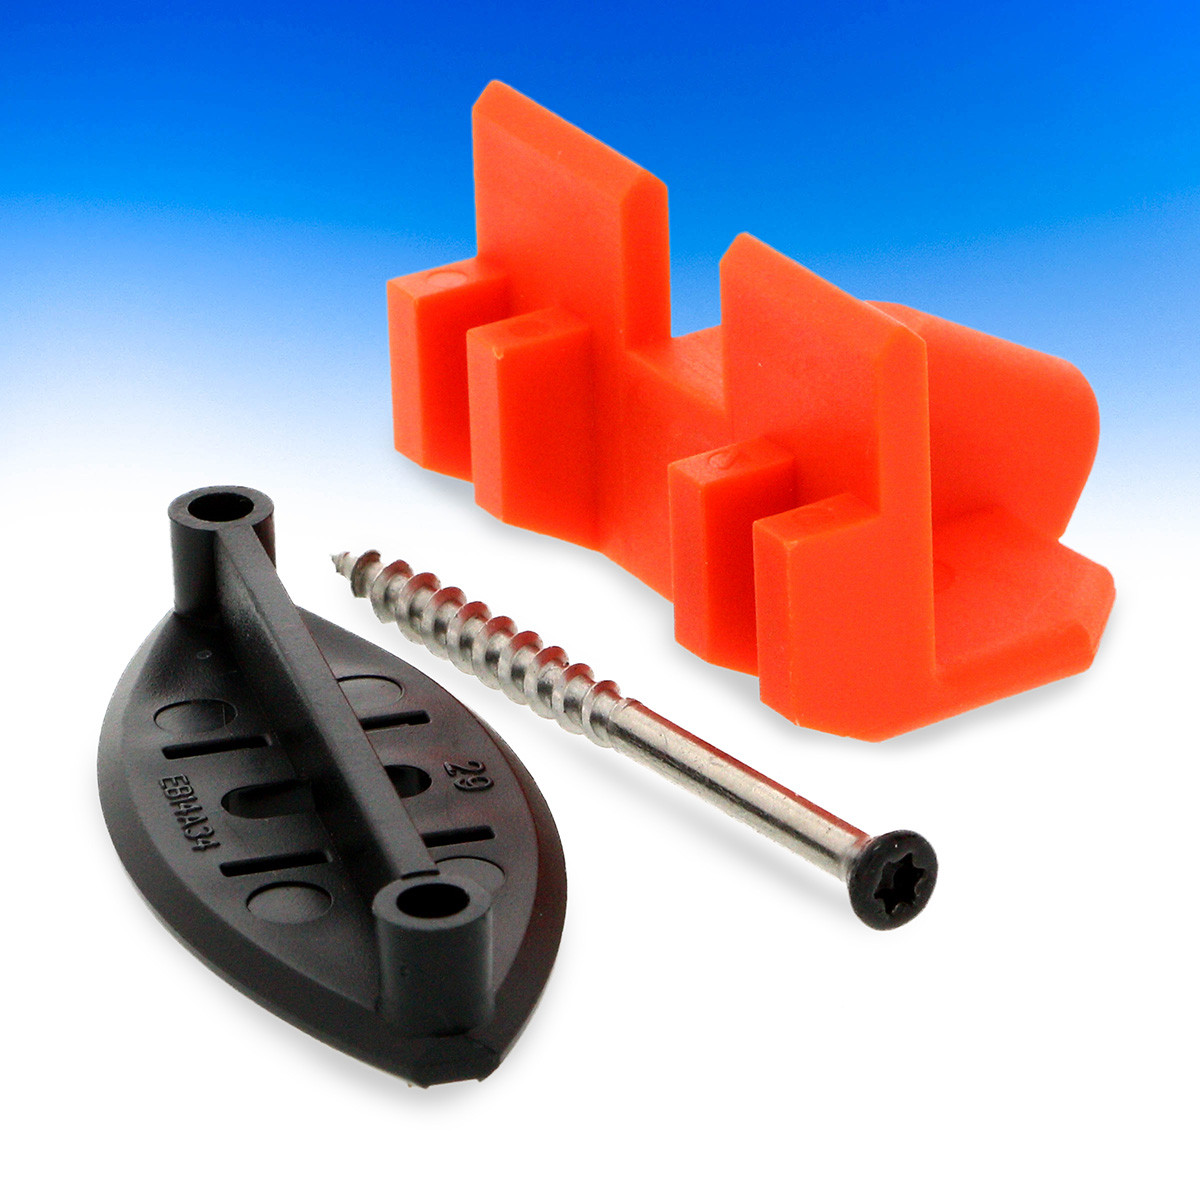 EB-TY Hidden Deck Fastener by Simpson Strong-Tie - Provides 1/4 in spacing